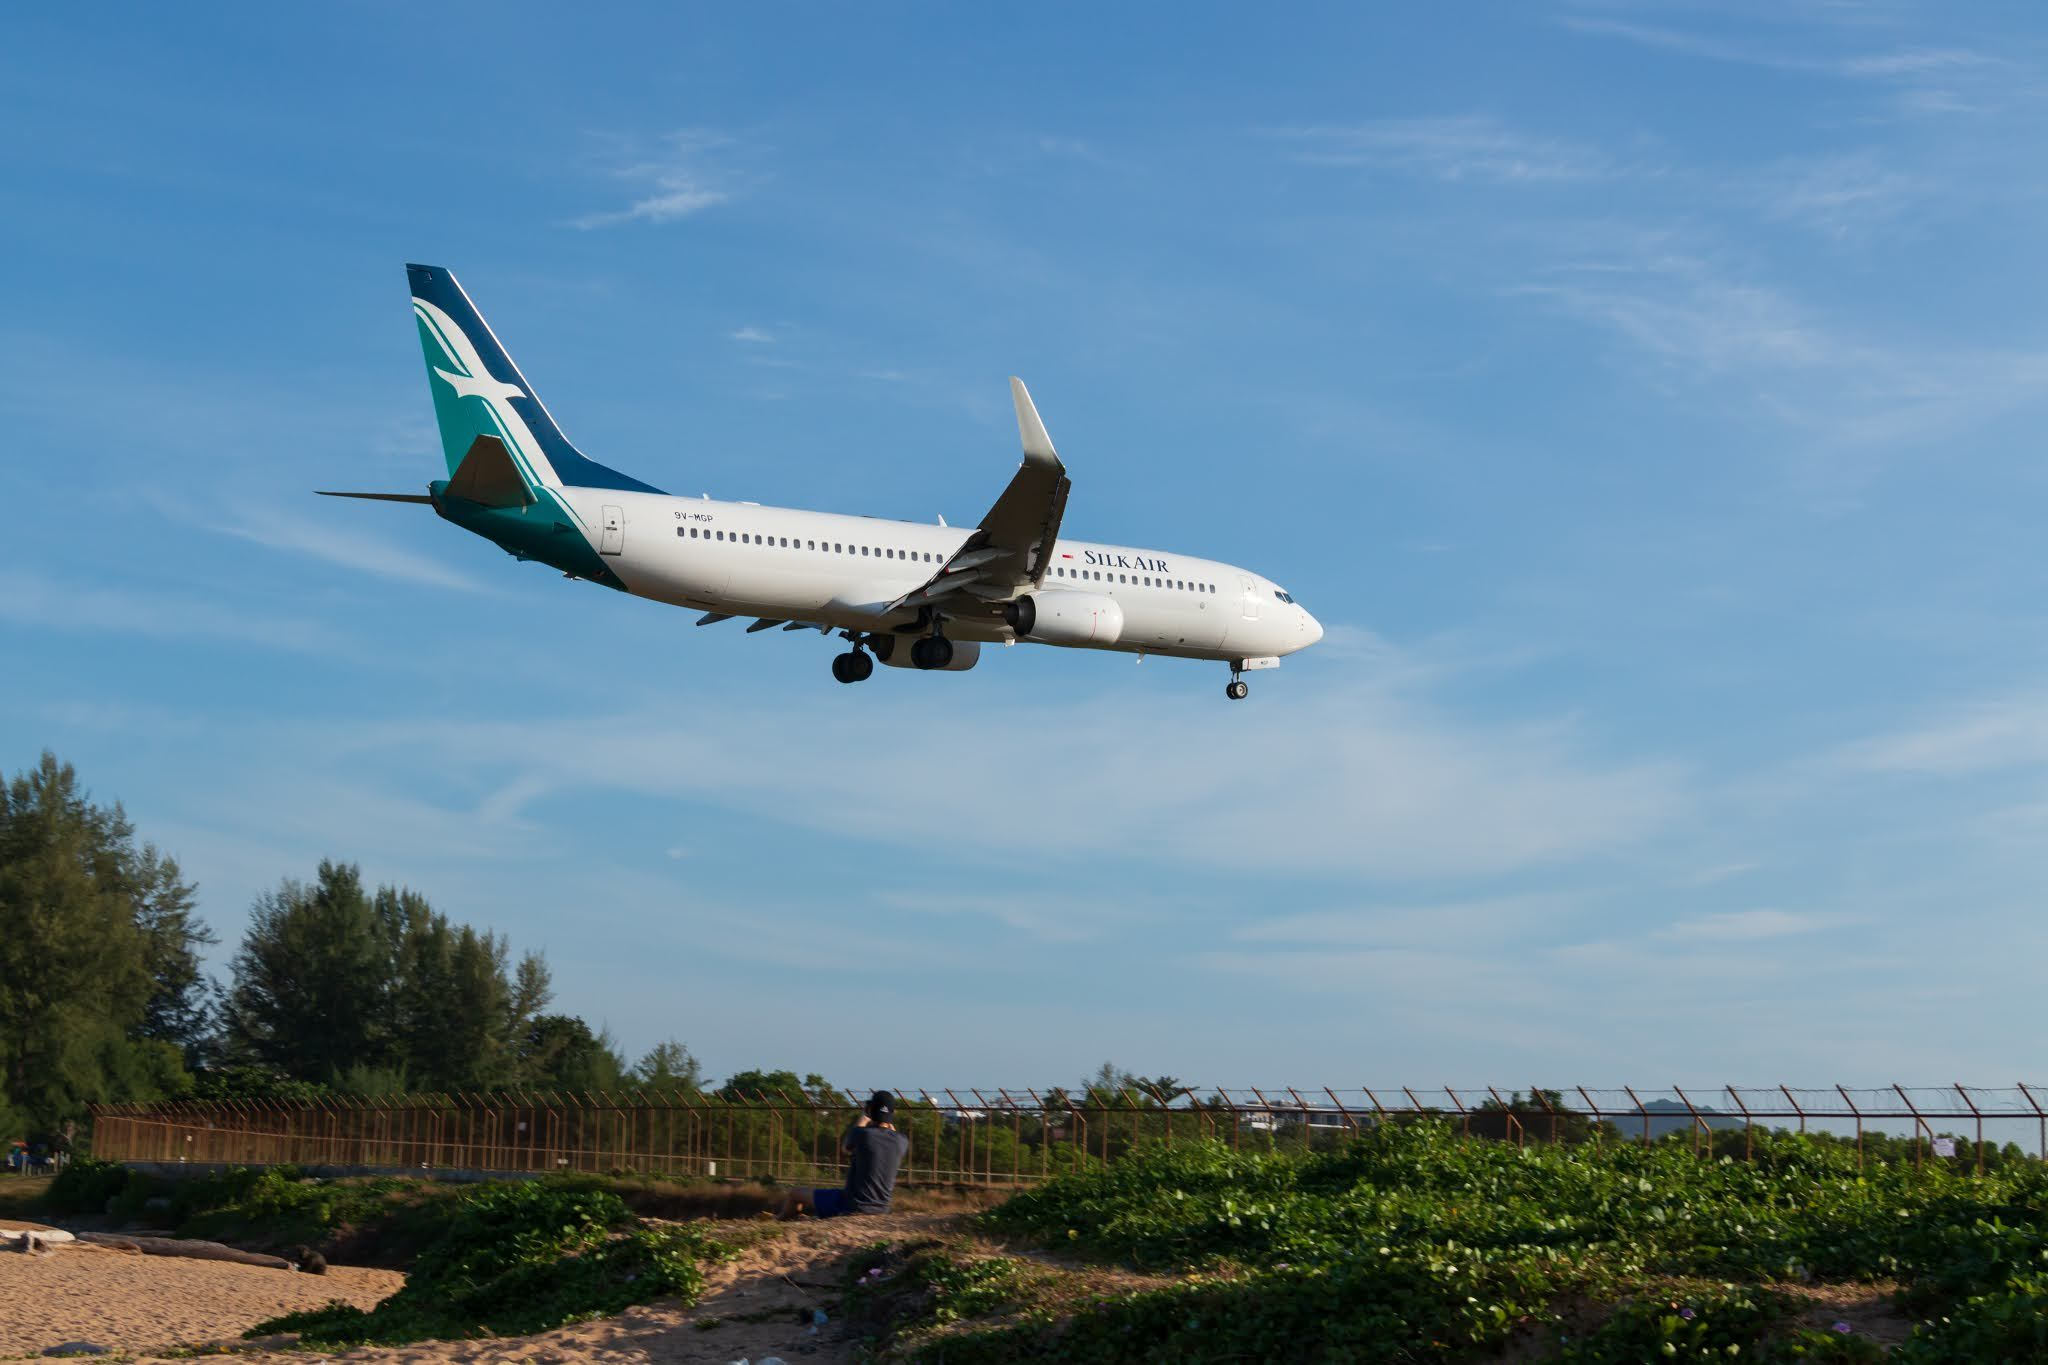 SilkAir has officially merged with Singapore Airlines